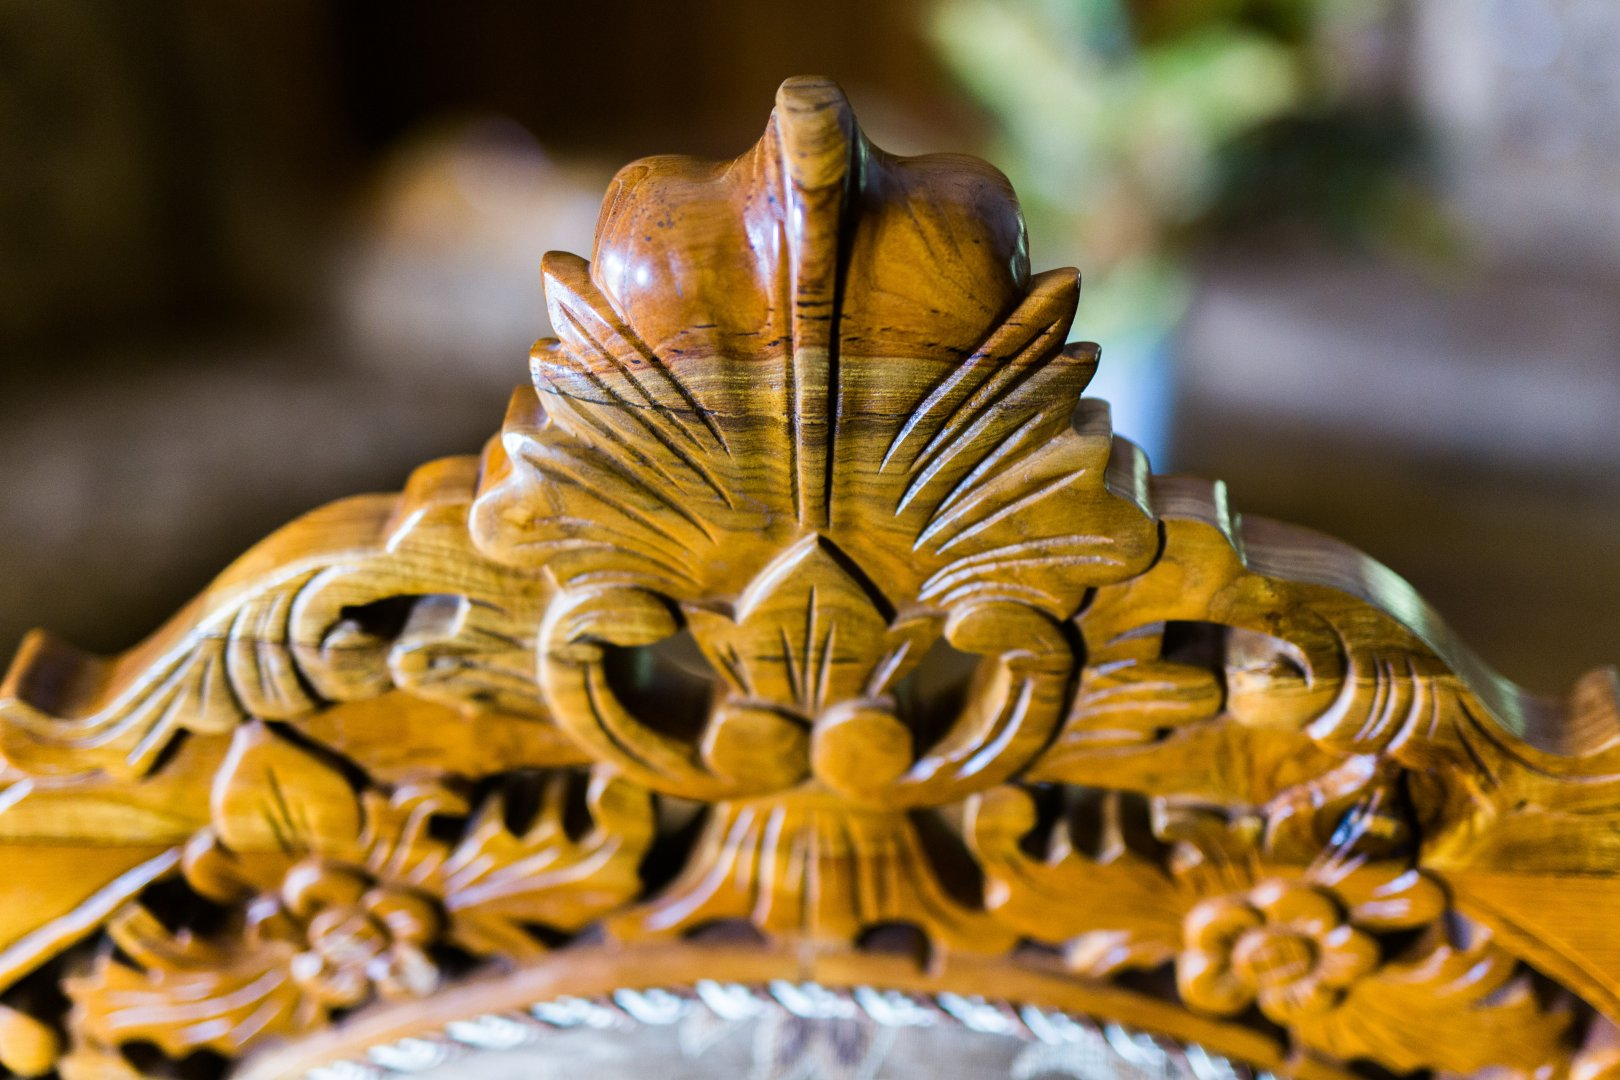 Carving Yellow Leaf Stone carving Metal Architecture Art Plant Ornament Gold Festival